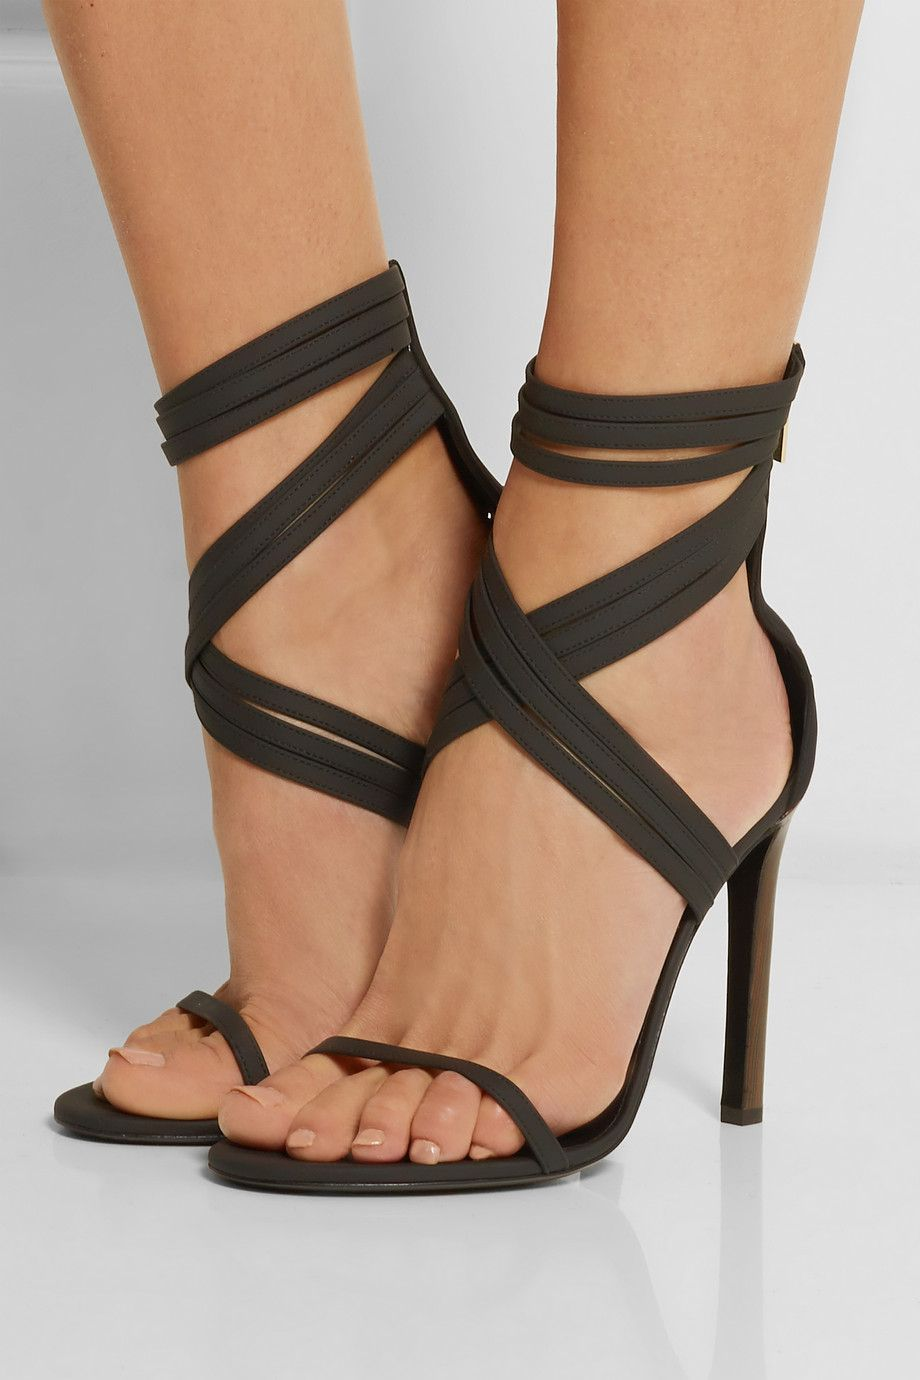 Tamara Mellon Leather Caged Sandals newest cheap online visit new cheap price buy cheap free shipping free shipping under $60 sale pictures lROIIQfv